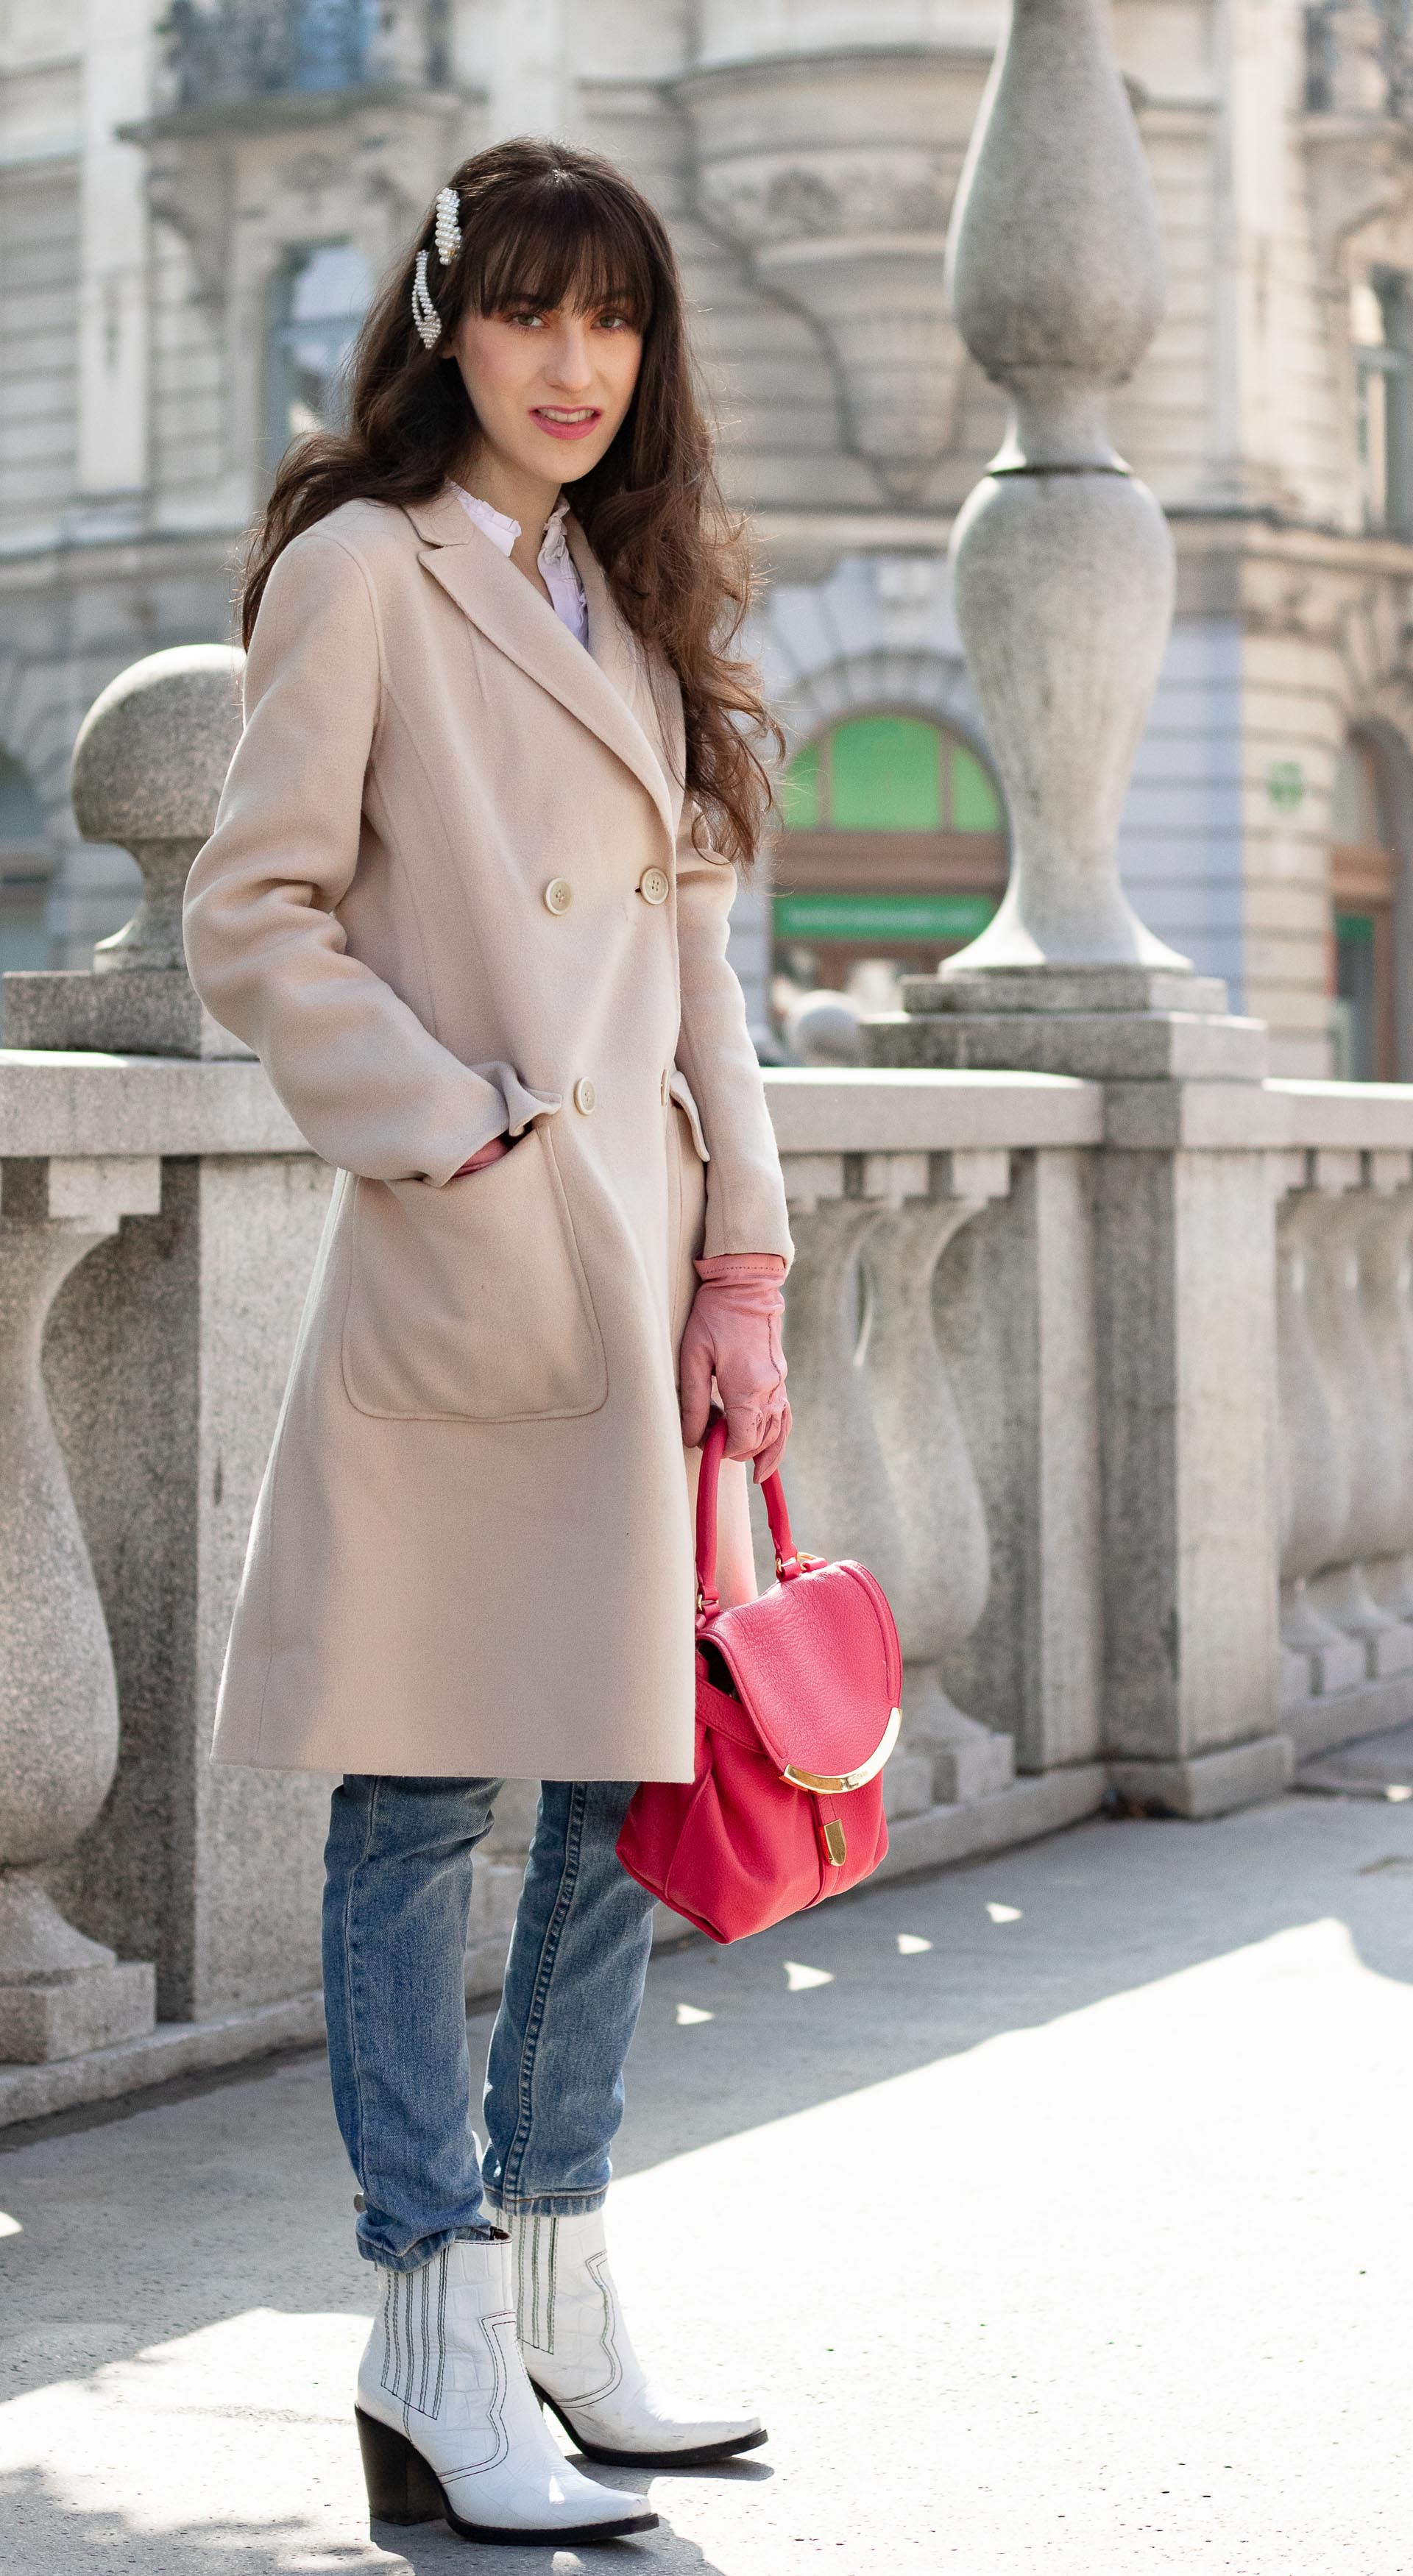 Must follow Slovenian Fashion Blogger Veronika Lipar of Brunette from Wall Street wearing white western Ganni boots Weekend Max Mara coat white fringe shirt a.p.c. washed denim jeans pearl hair accessories See by Chloe pink top handle bag pink gloves on the street